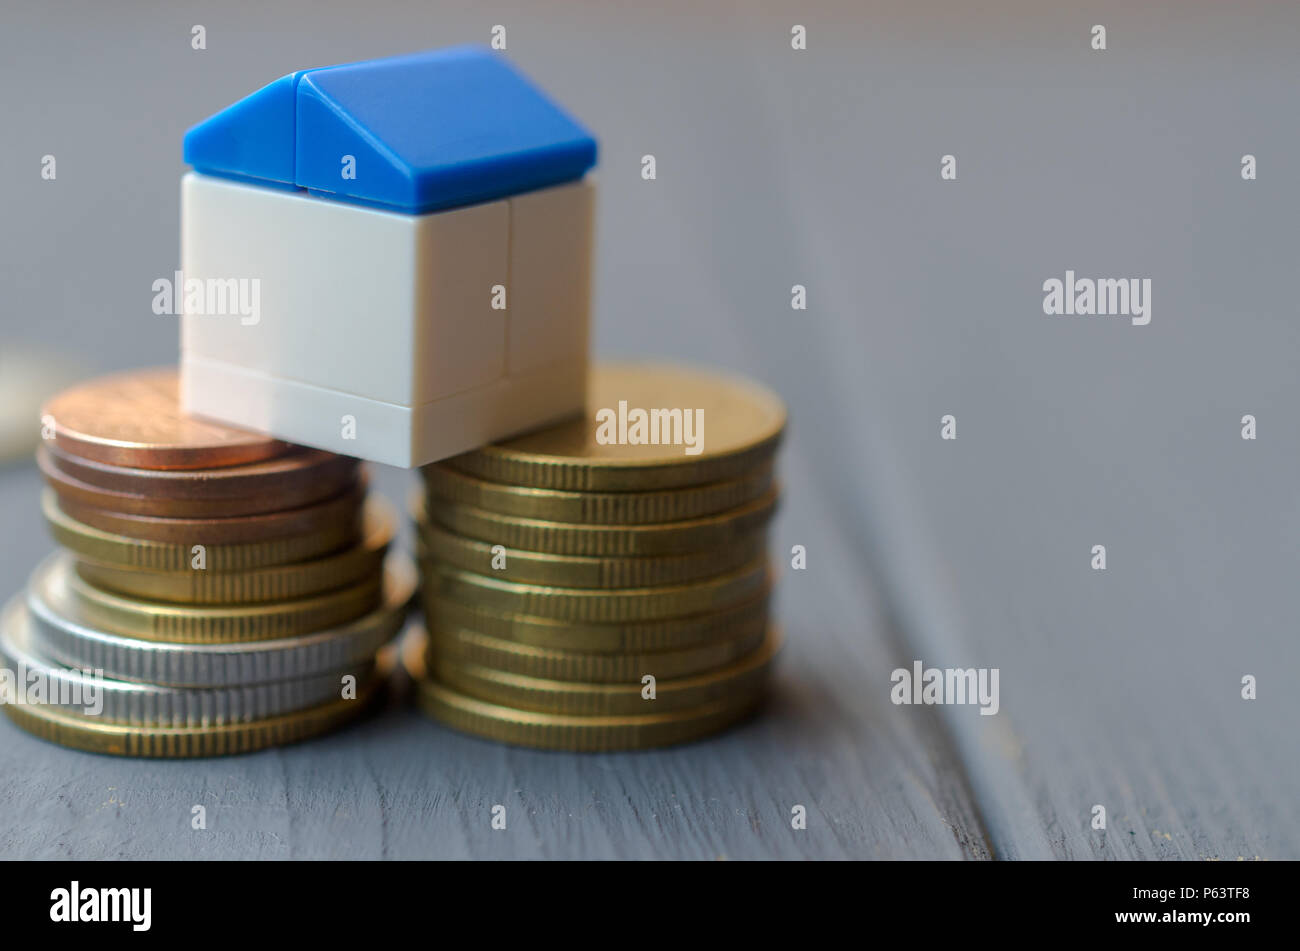 The concept of loans for housing. White house with a blue roof on a pile of coins Stock Photo